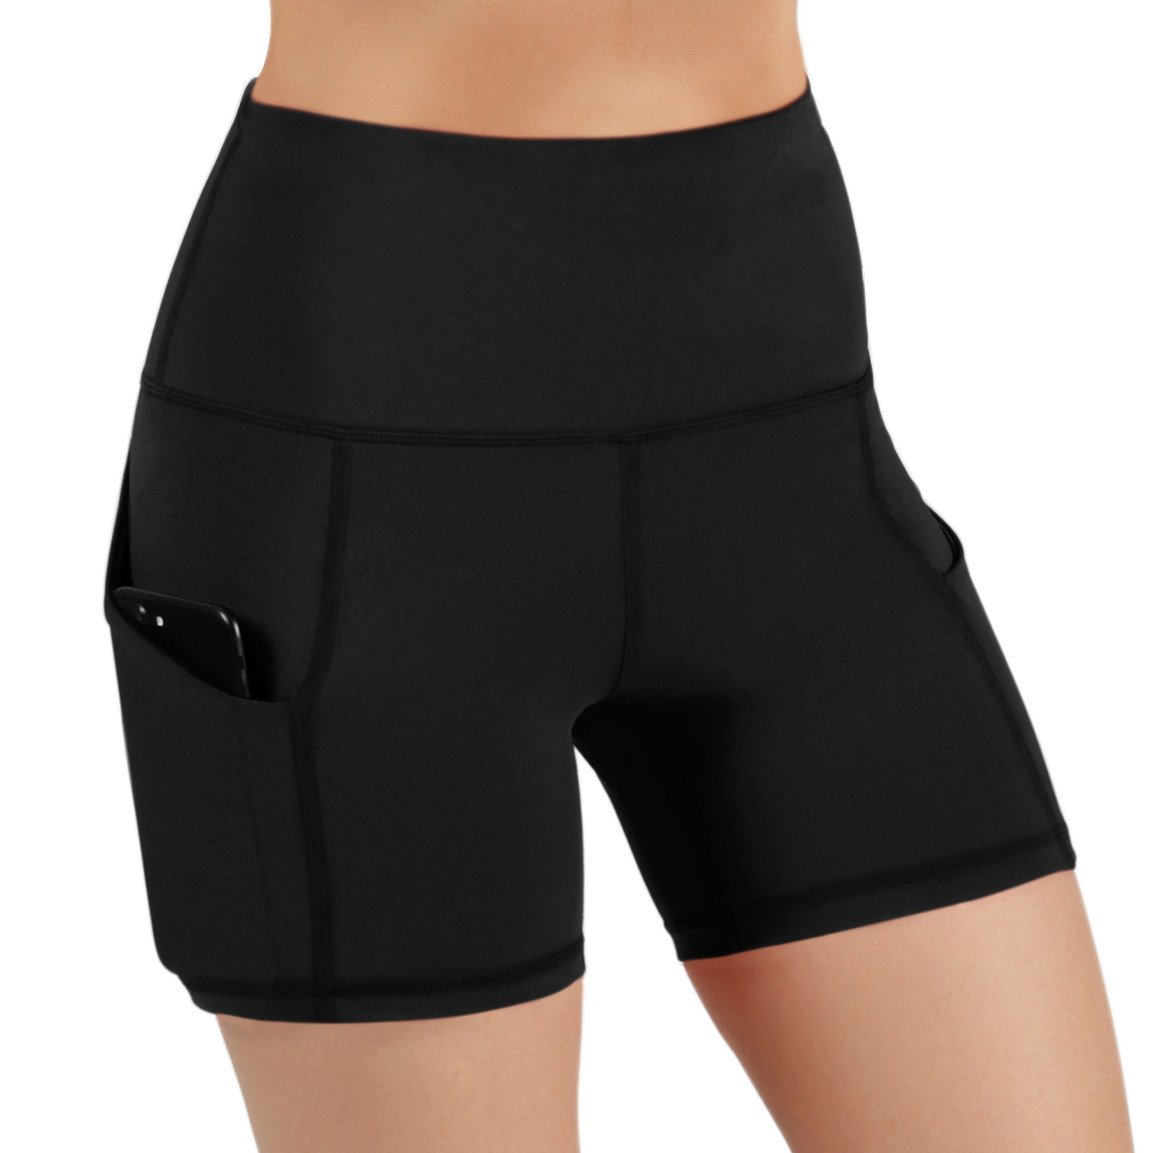 ODODOS High Waist Out Pocket Yoga Shots Tummy Control Workout Running 4 Way Stretch Yoga Shots, Black, Medium